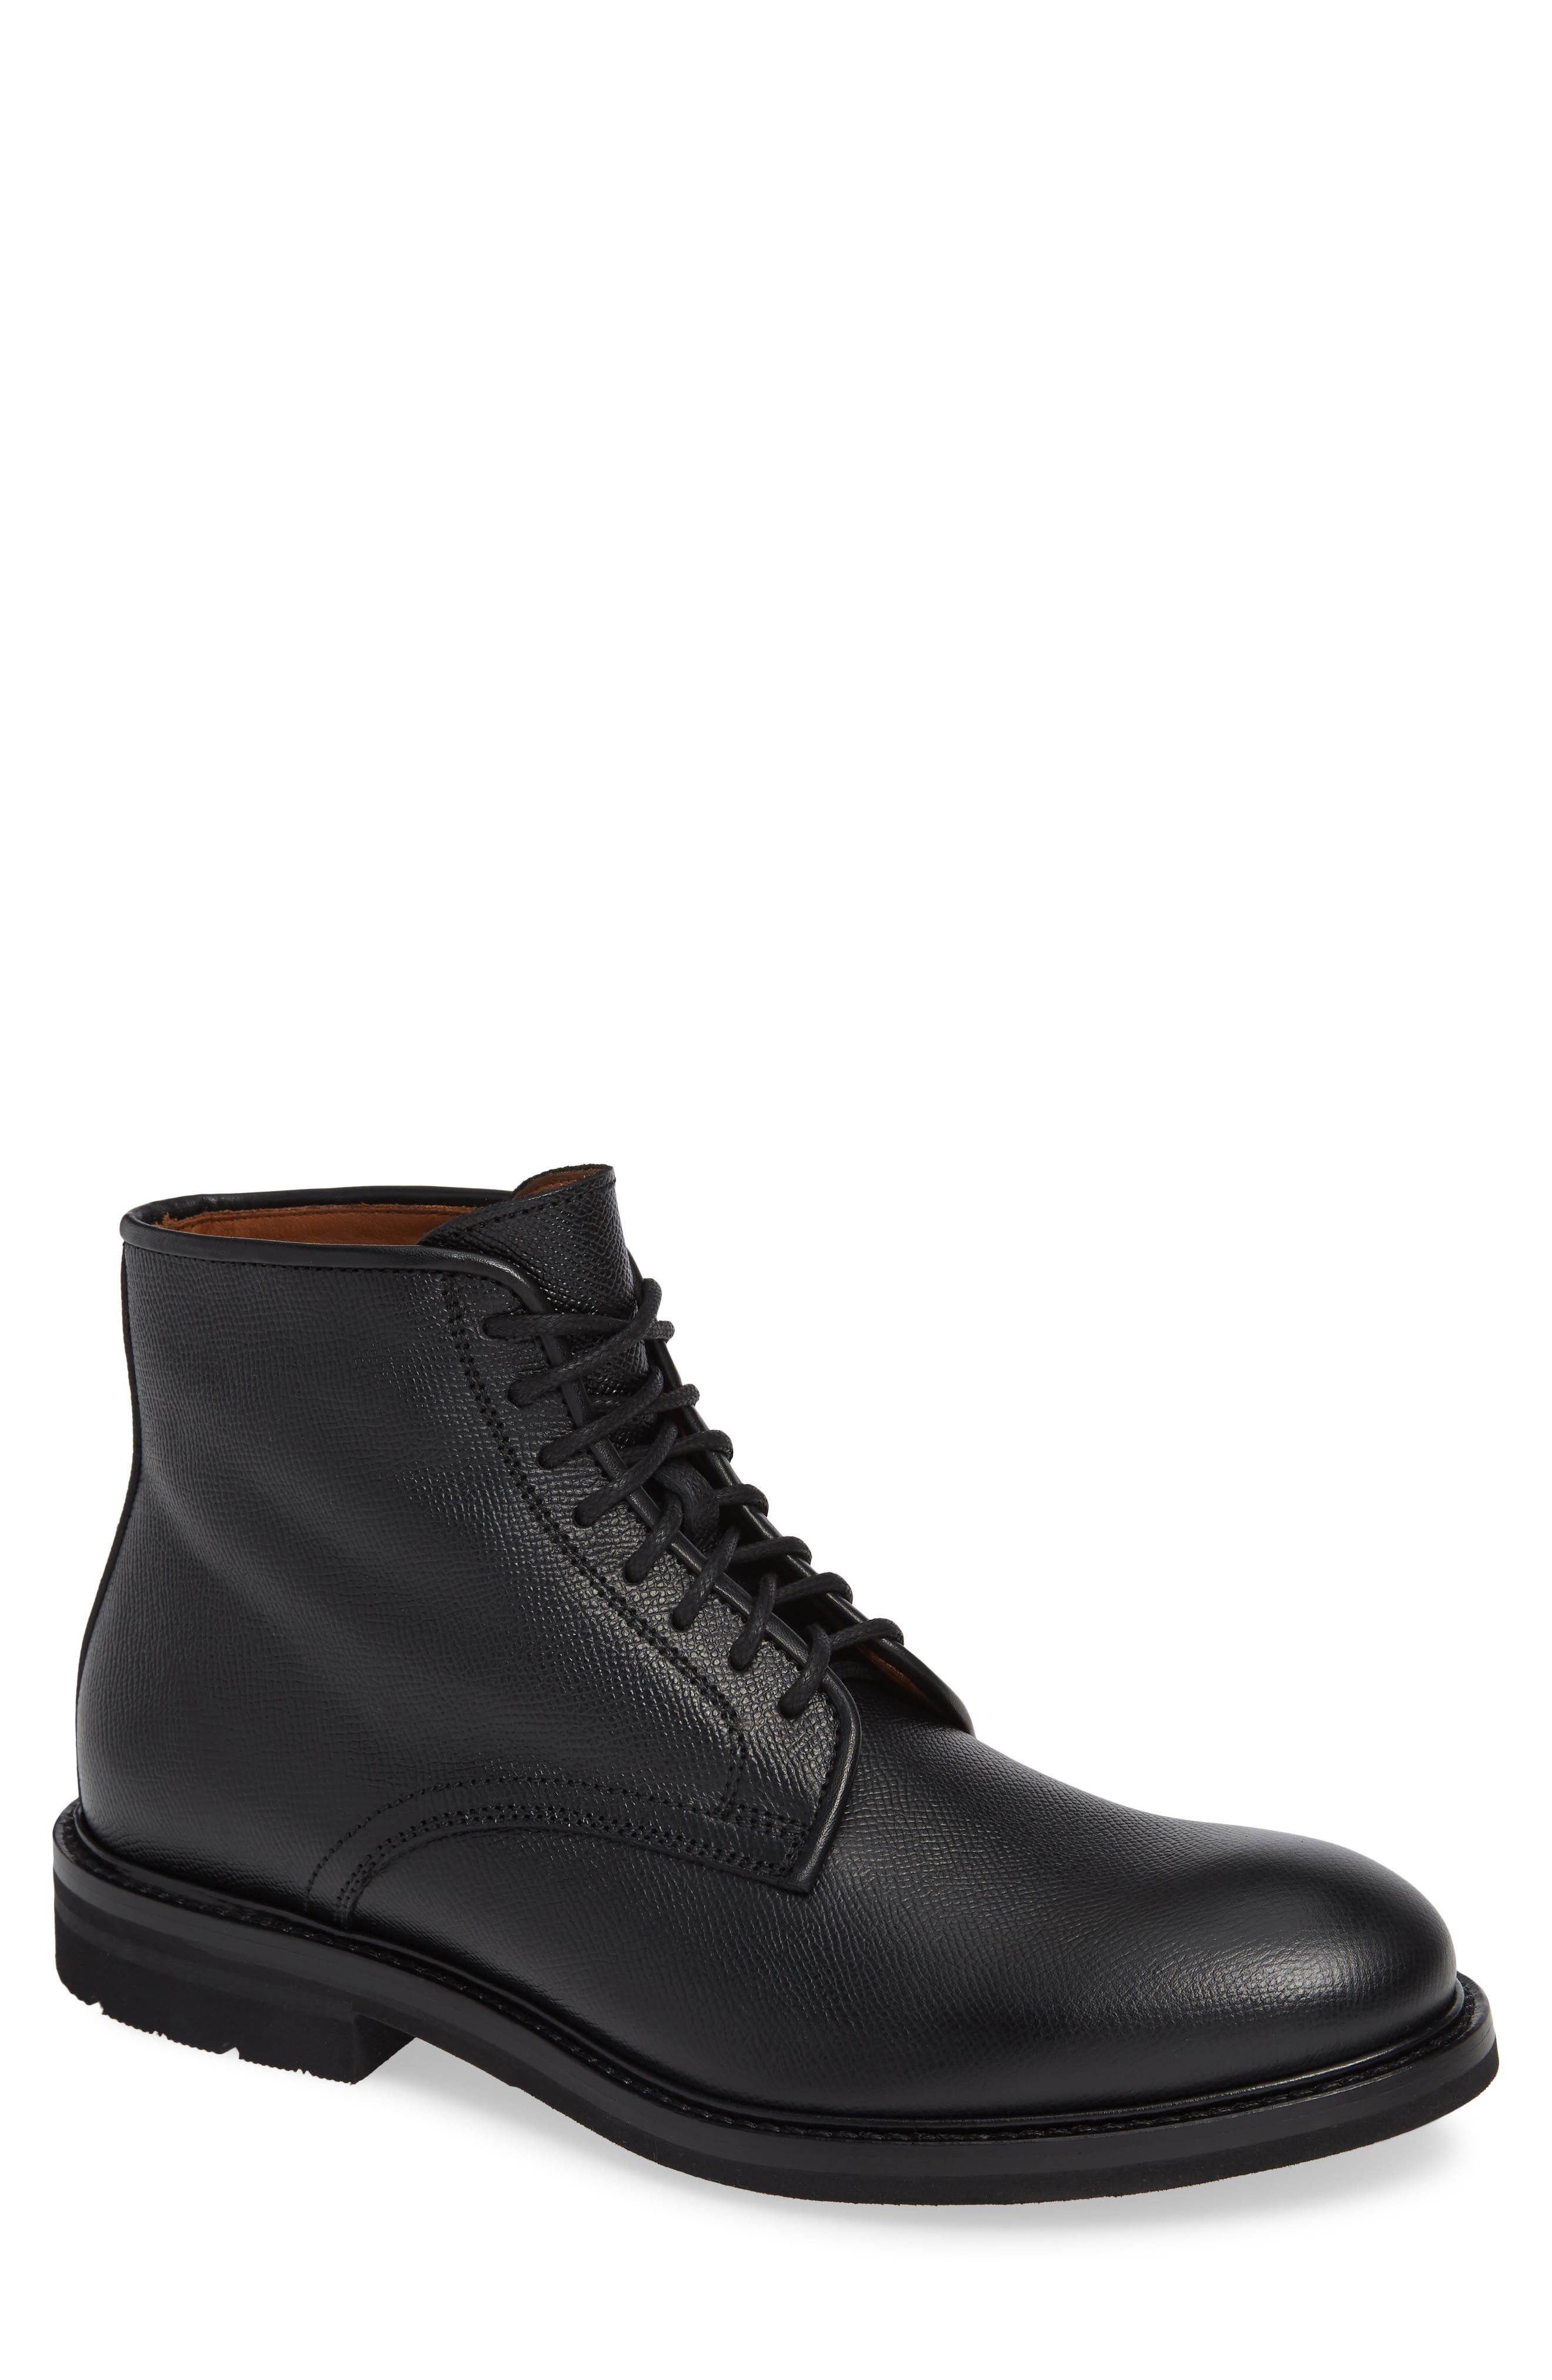 Aquatalia Renzo Water Resistant Plain Toe Waterproof Boot, Black